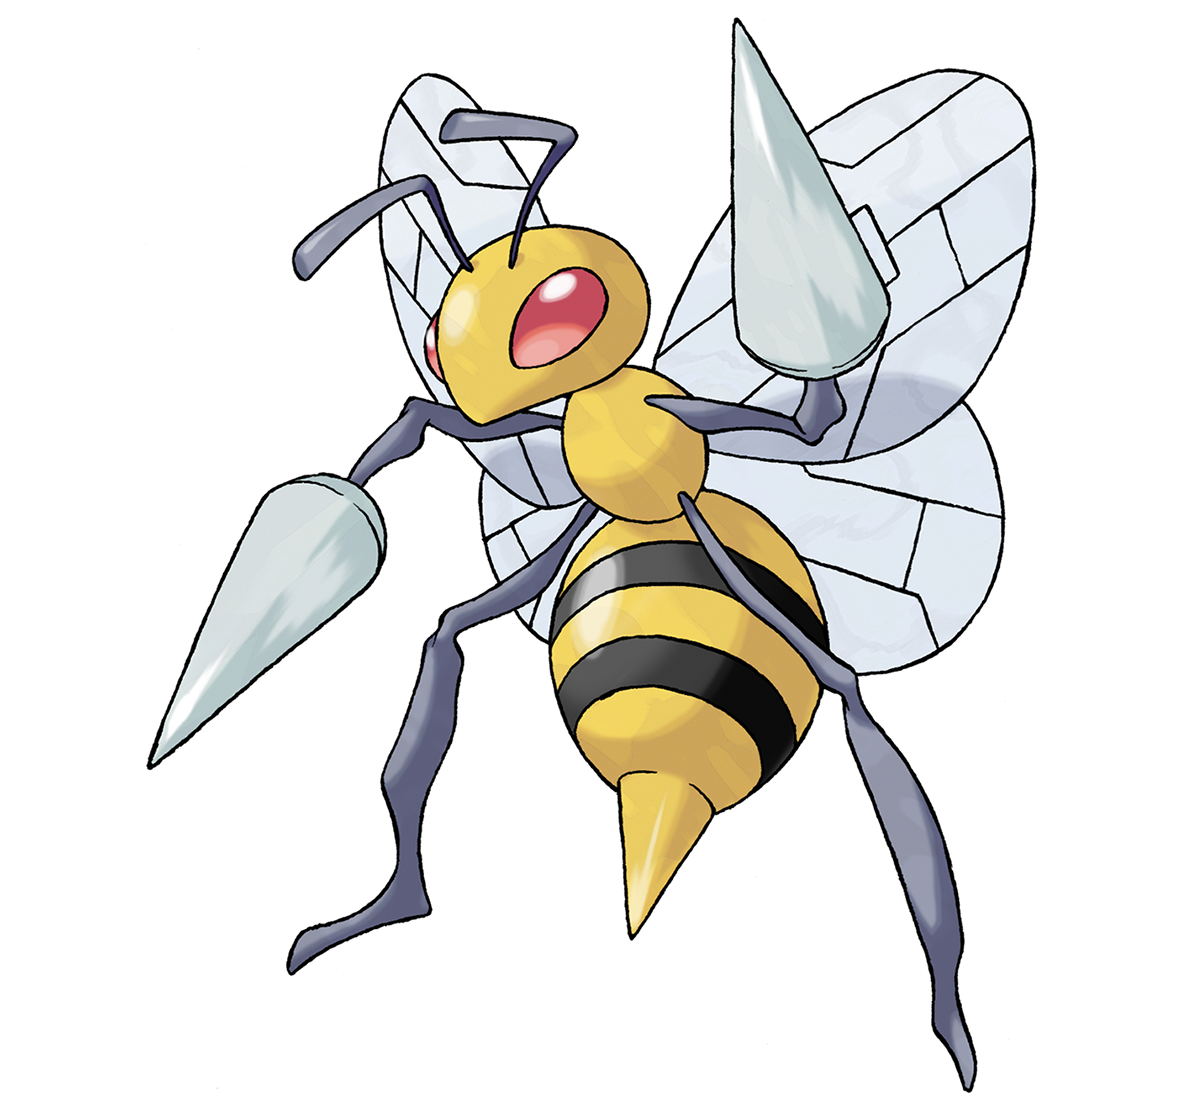 Archivo:Beedrill.png